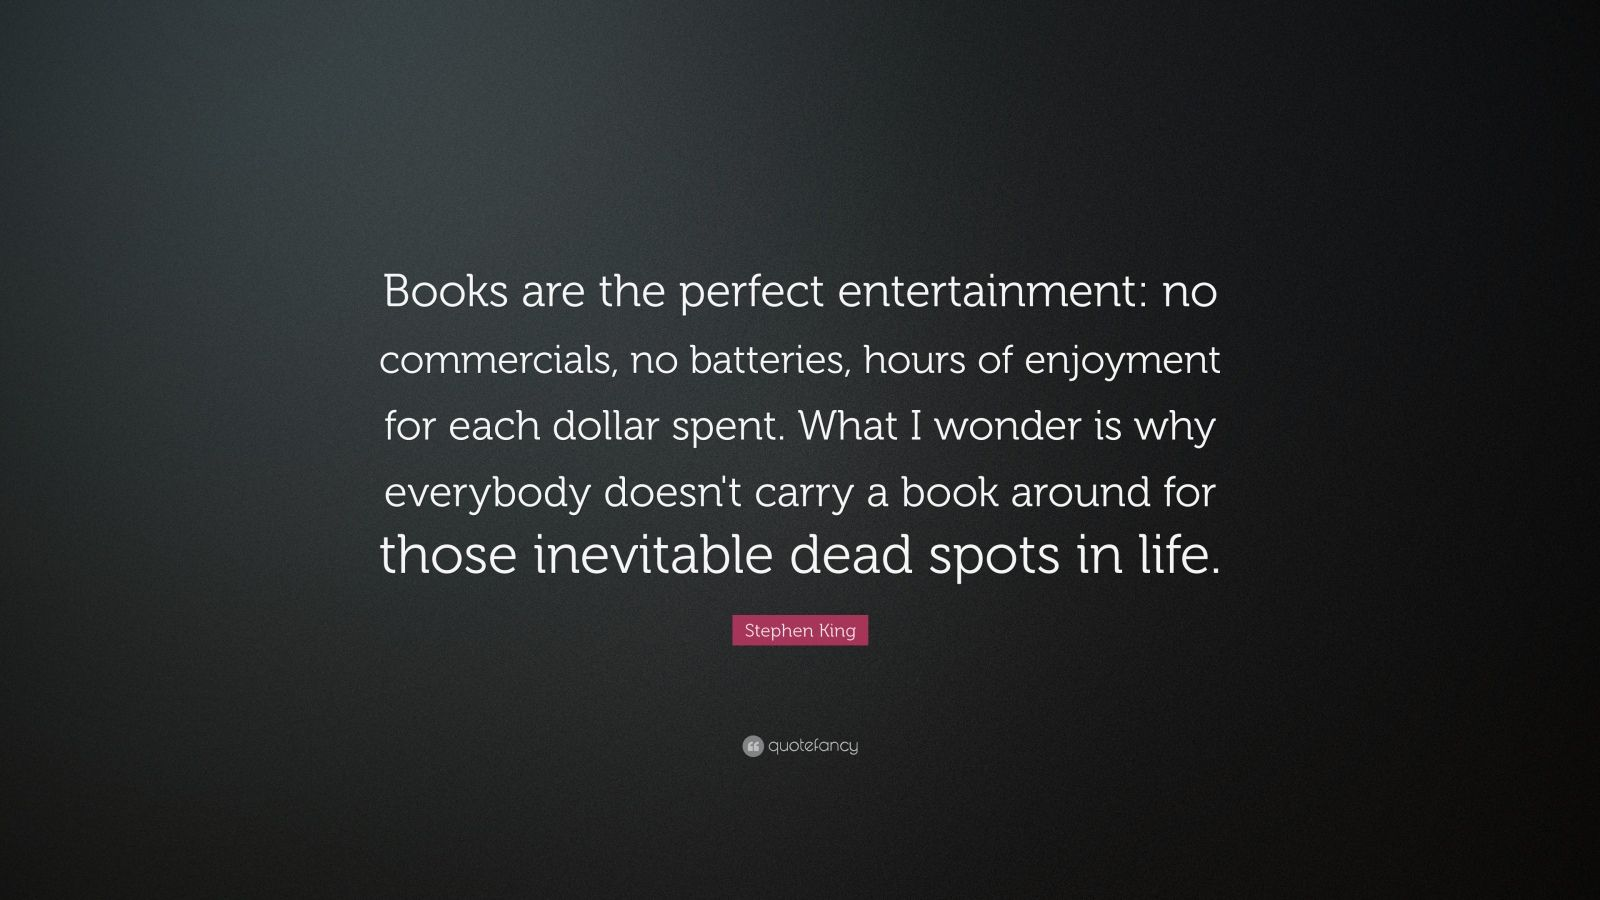 "Stephen King Quote: ""Books are the perfect entertainment: no commercials, no batteries, hours of enjoyment for each dollar spent. What I wonder is why everybody doesn't carry a book around for those inevitable dead spots in life."""